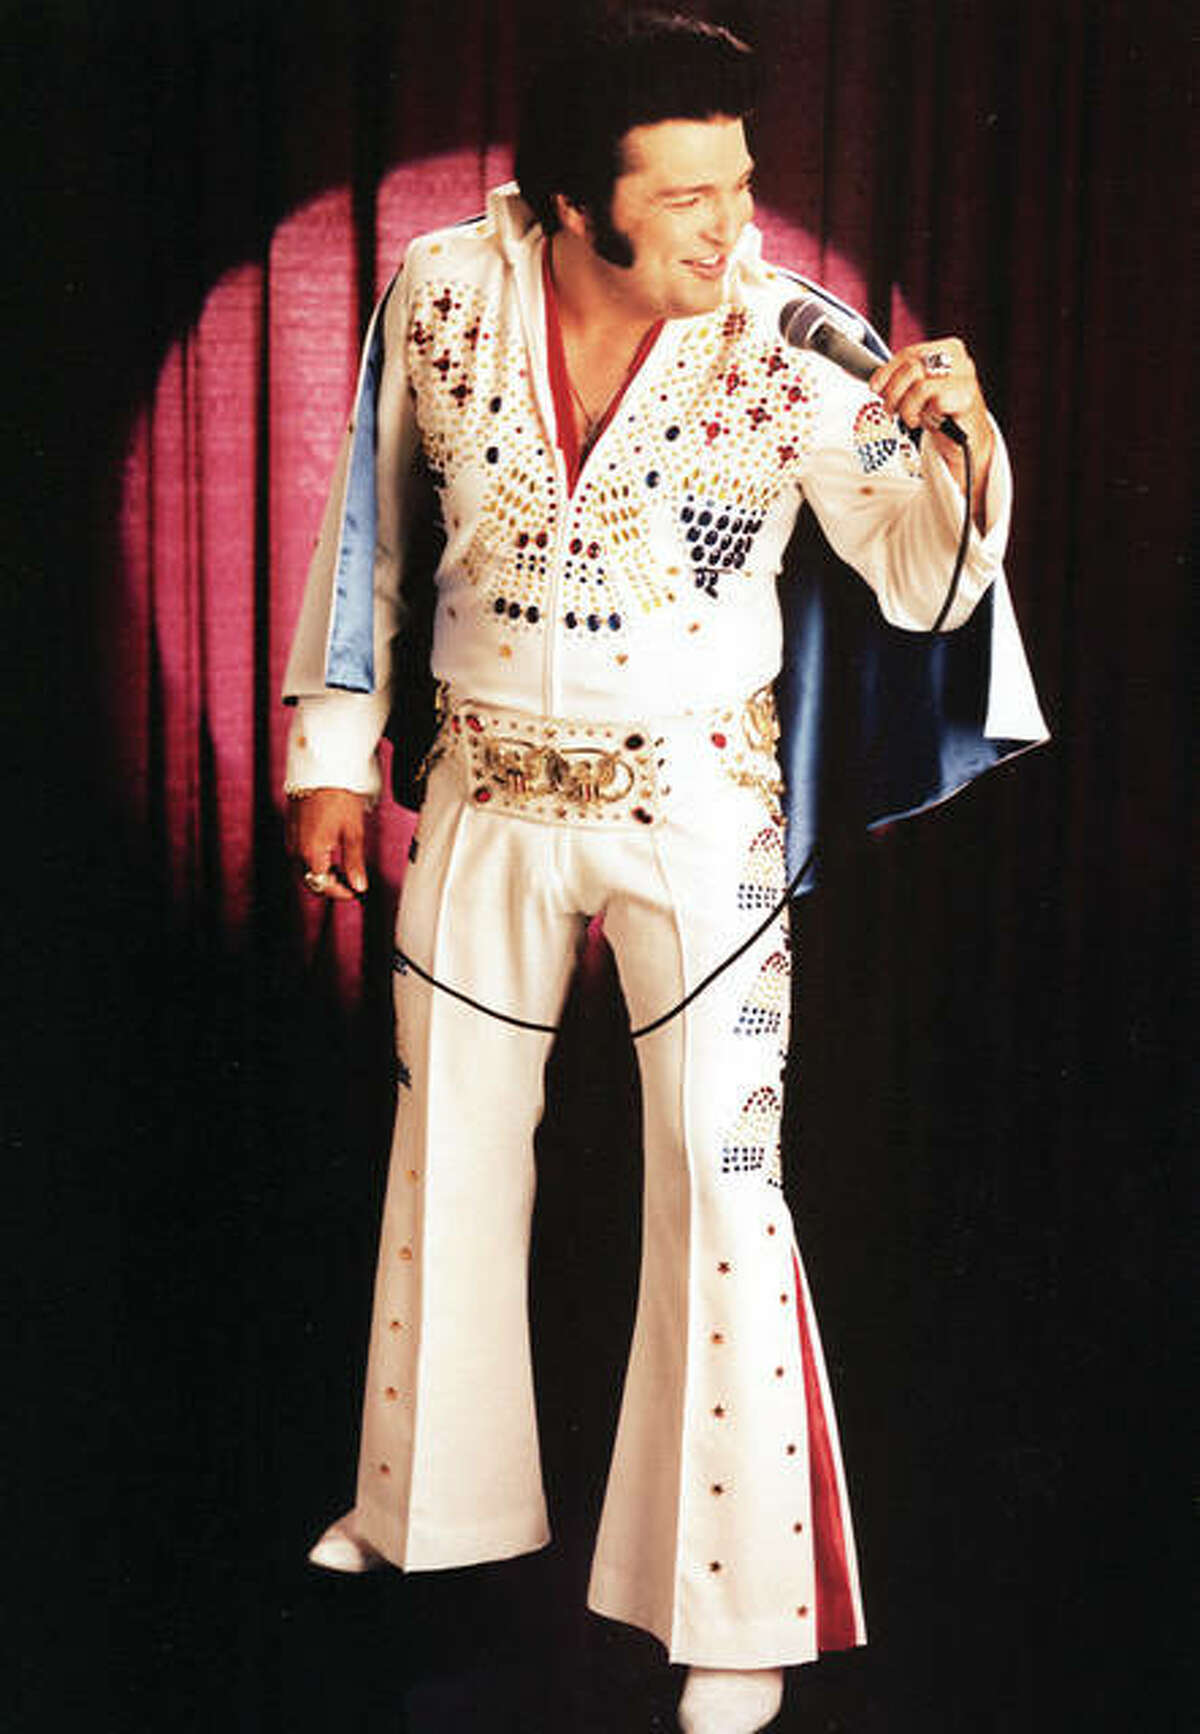 """Steve """"Elvis"""" Davis will perform in Alton on Tuesday, Aug. 17 at 7 p.m. at the Robert Wadlow Statue, 2810 College Ave., in Alton."""